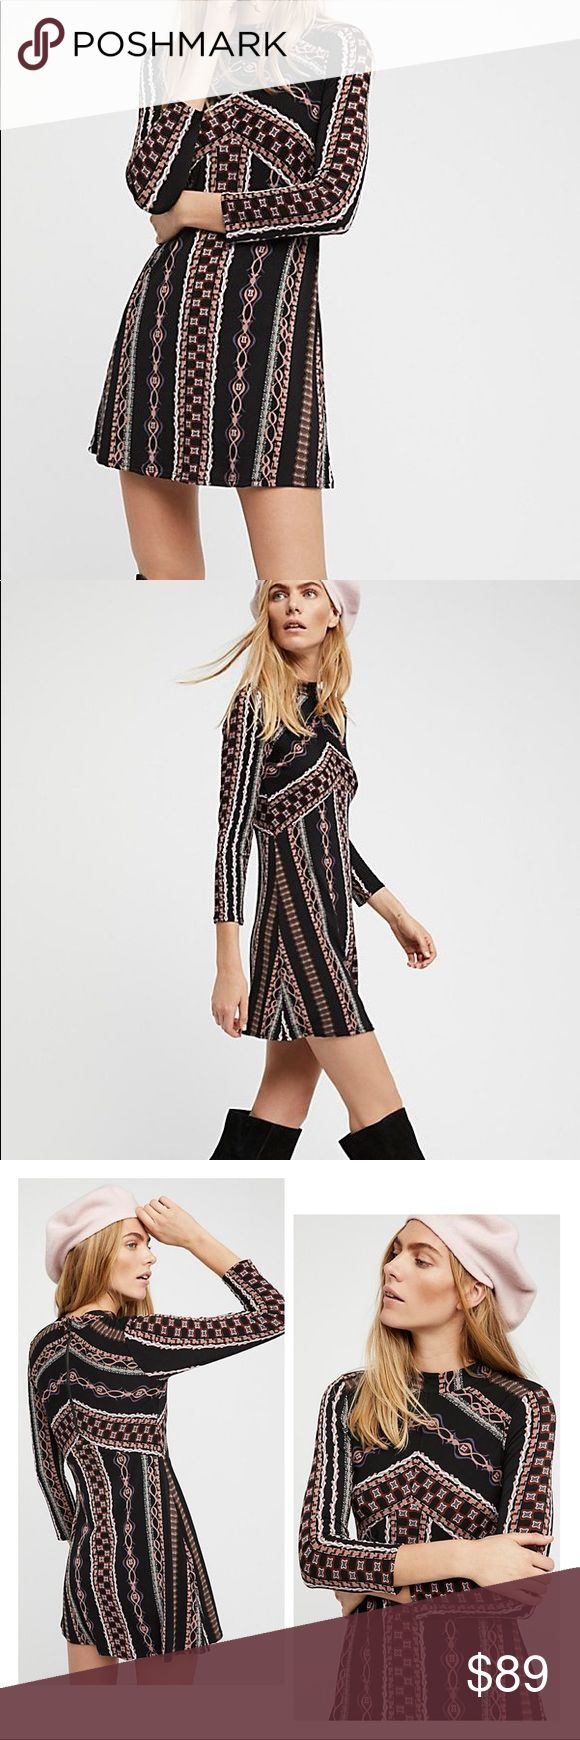 Free People Stella Mini Dress Mod, vintage, classy dress you can dress up or down. Wore twice in December and received lots of compliments. Wear thigh high boots like the model or tights and boots like I did if you're a little modest. Still available at full price online or save some dough and purchase this one today. No wear. Polyester outside and rayon lining. By the way, received high ratings by reviewers. Free People Dresses Mini